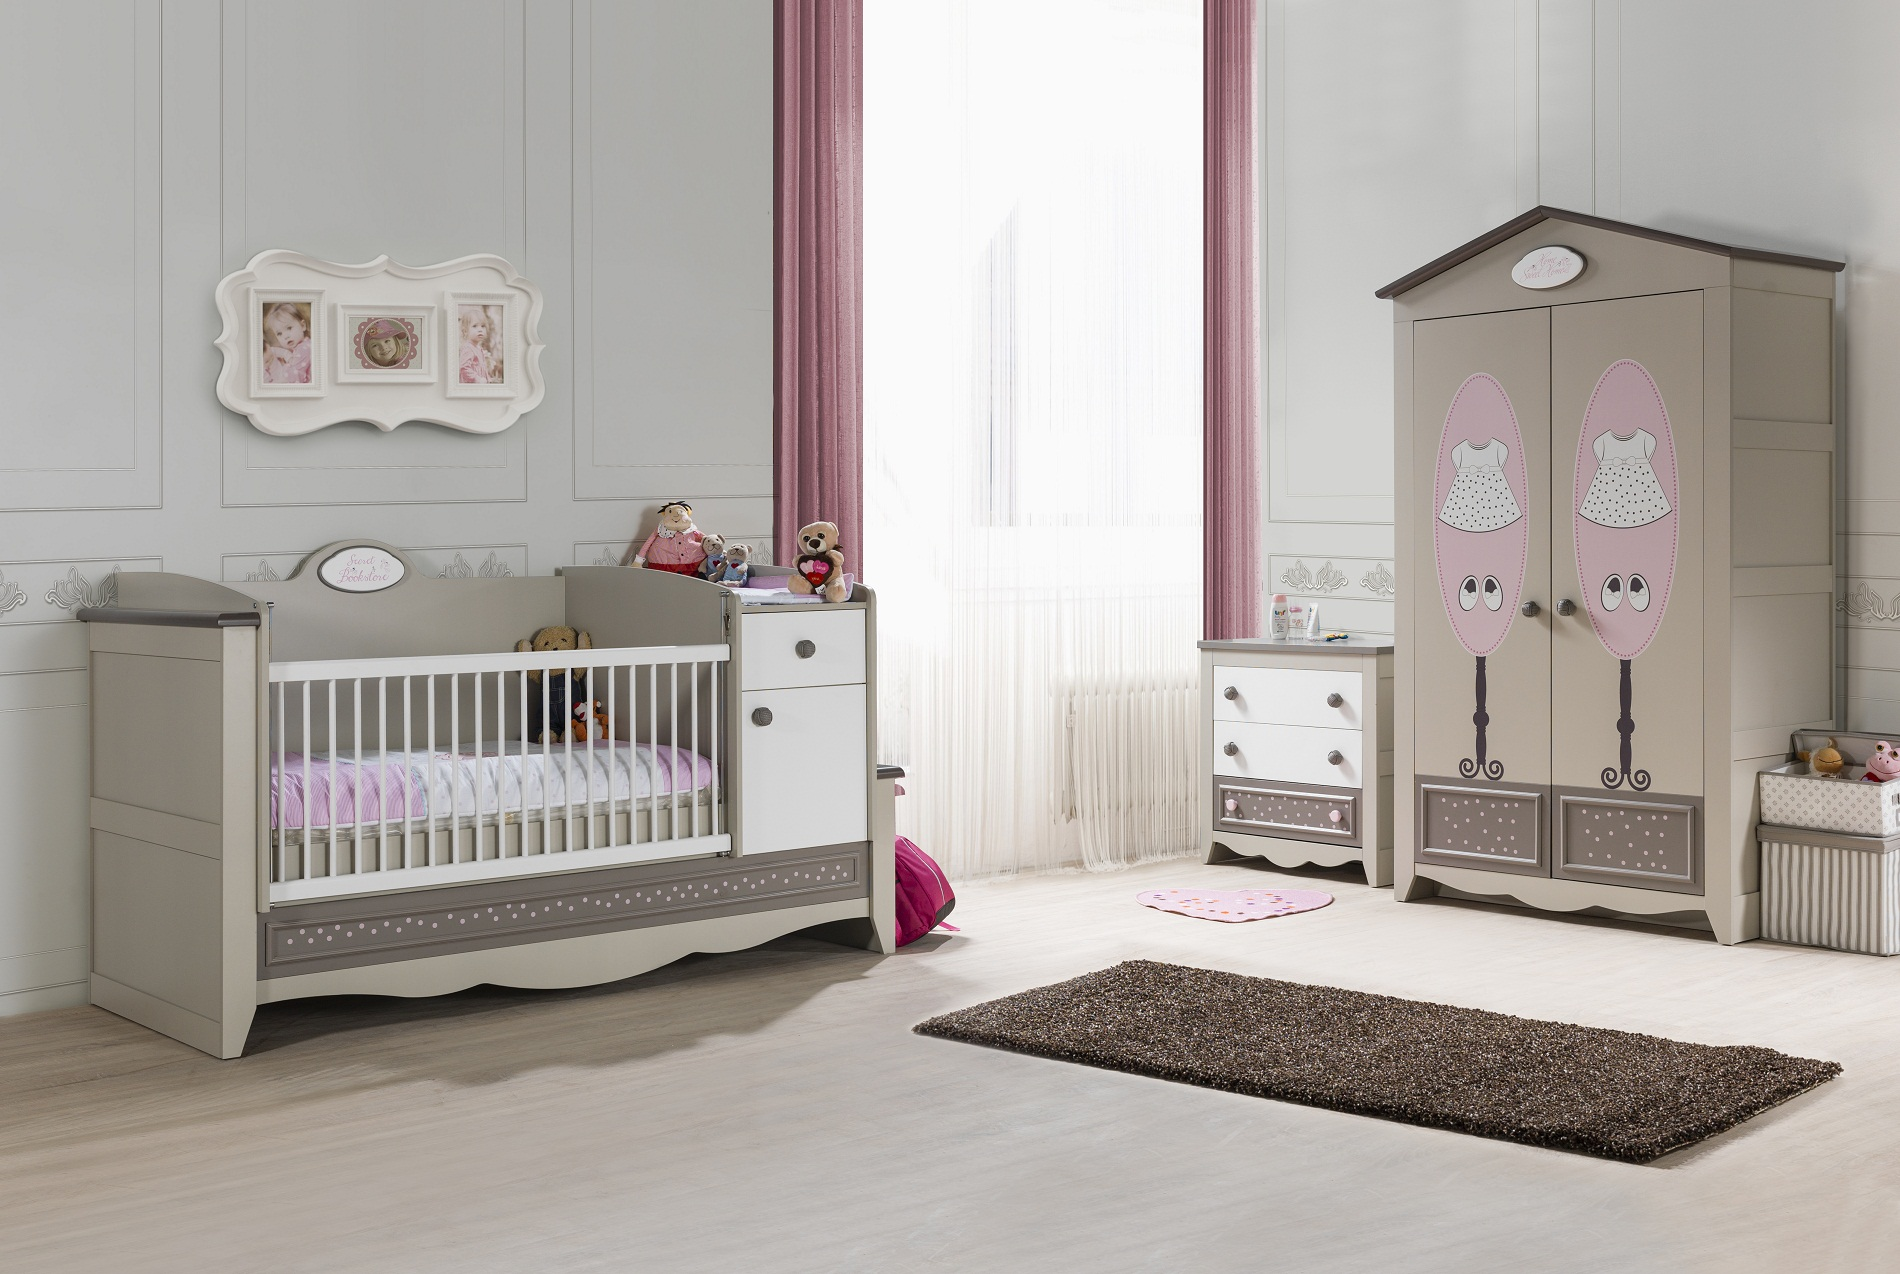 Charmant ... Babyzimmer Houses 3 Tlg Braun Beige Weiss Boutique Style